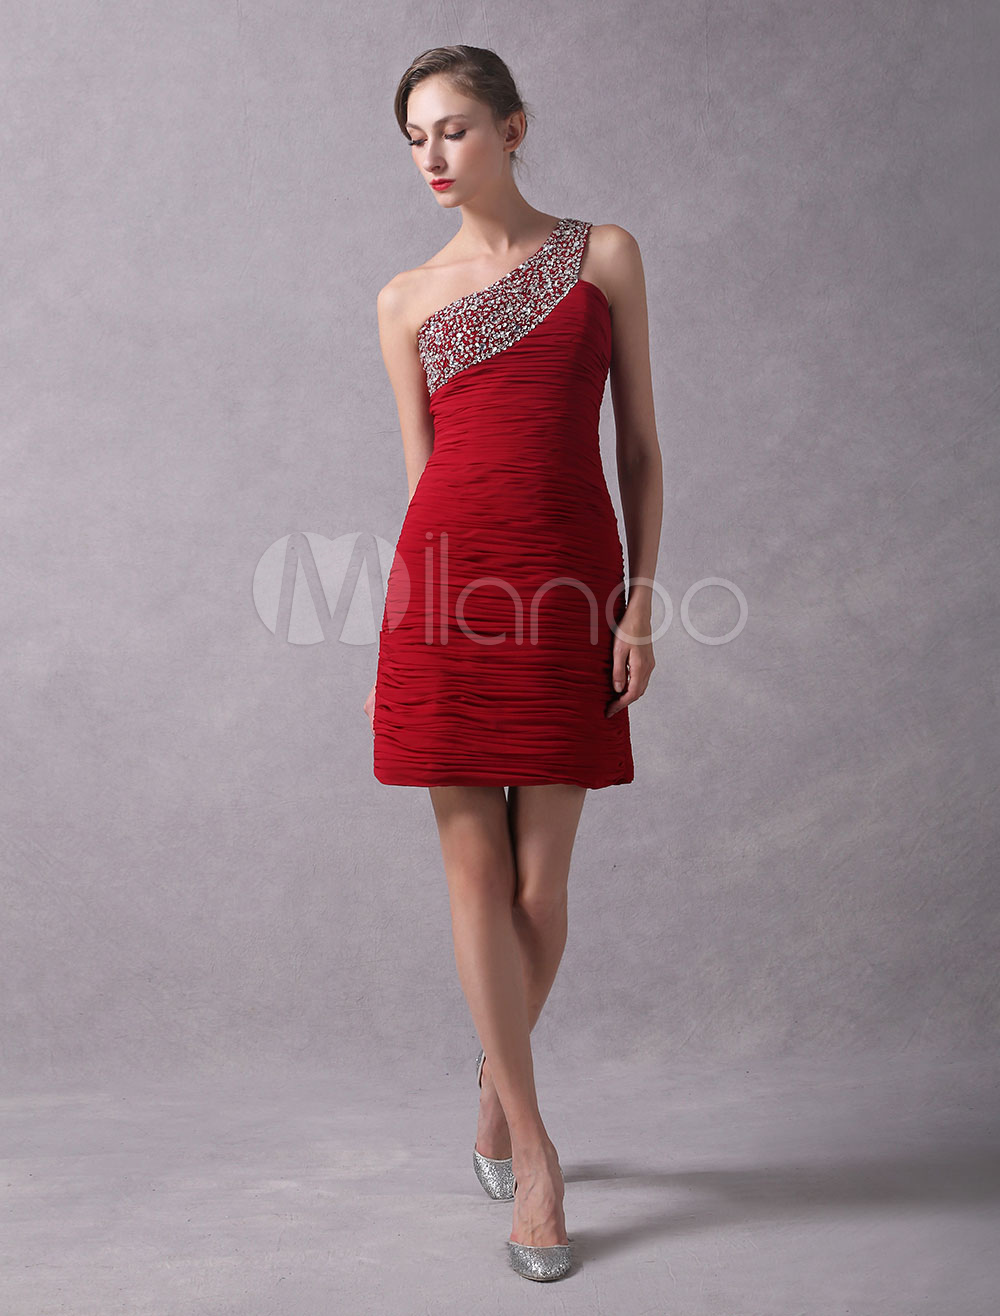 Red Cocktail Dresses Sheath Ruched Graduation Dress One Shoulder Beaded Column Mini Party Dresses